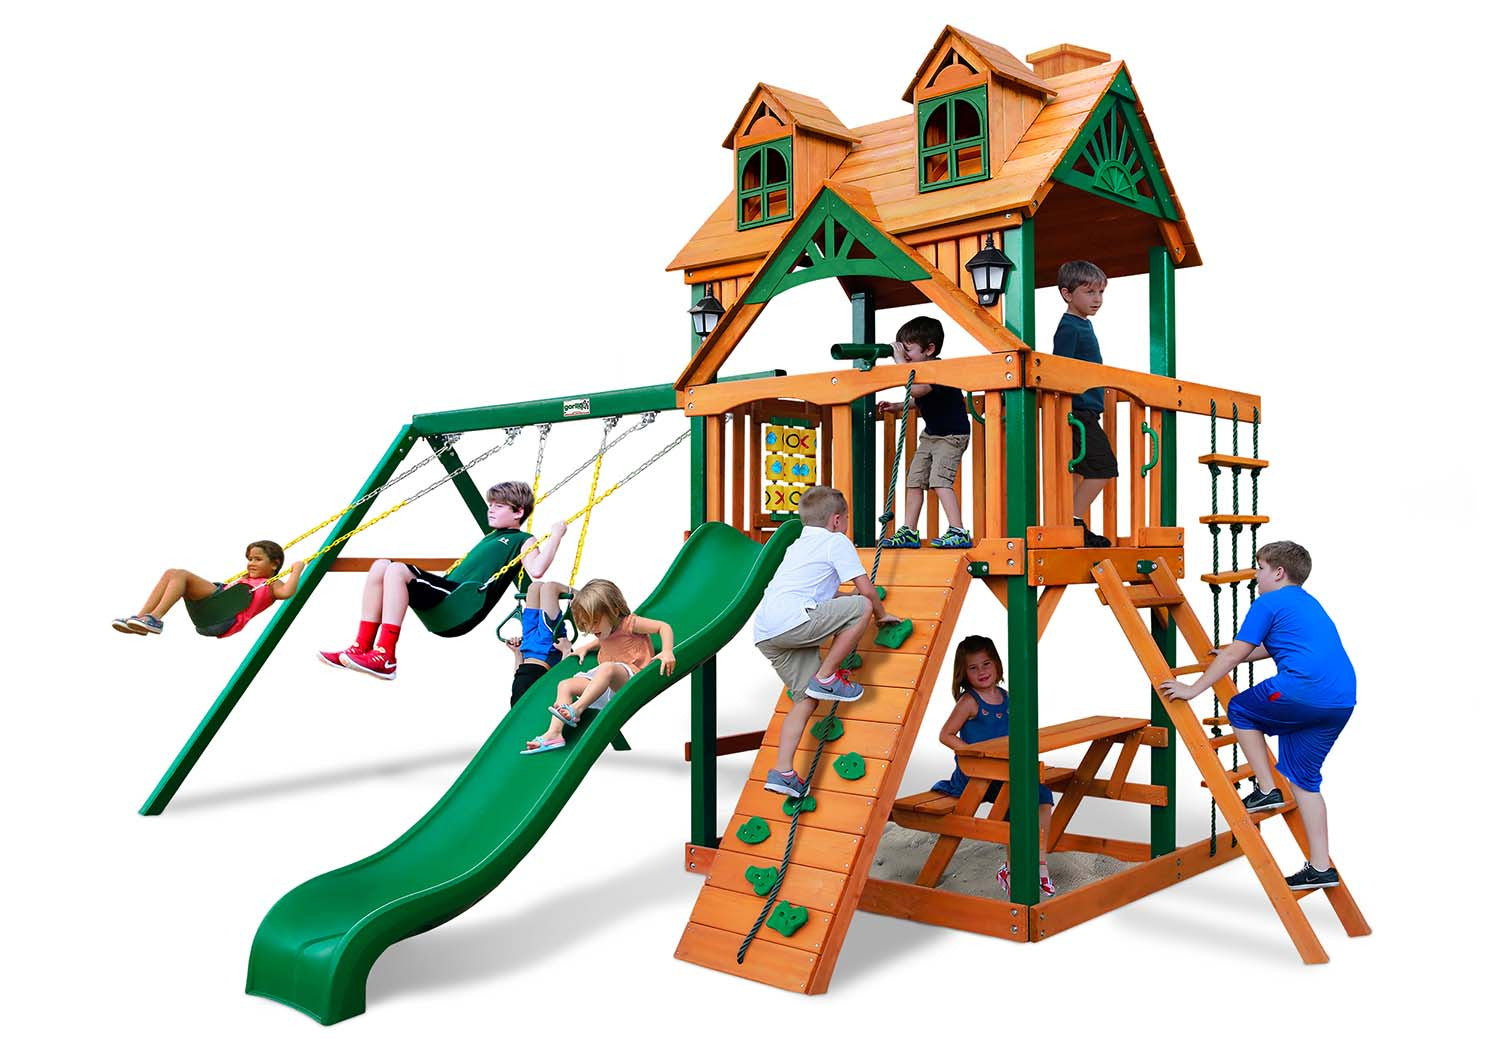 I Just Bought A Wooden Swing Set Over the Internet - Now What?  sc 1 st  NJ Swingsets : replacement canopy for playset - memphite.com